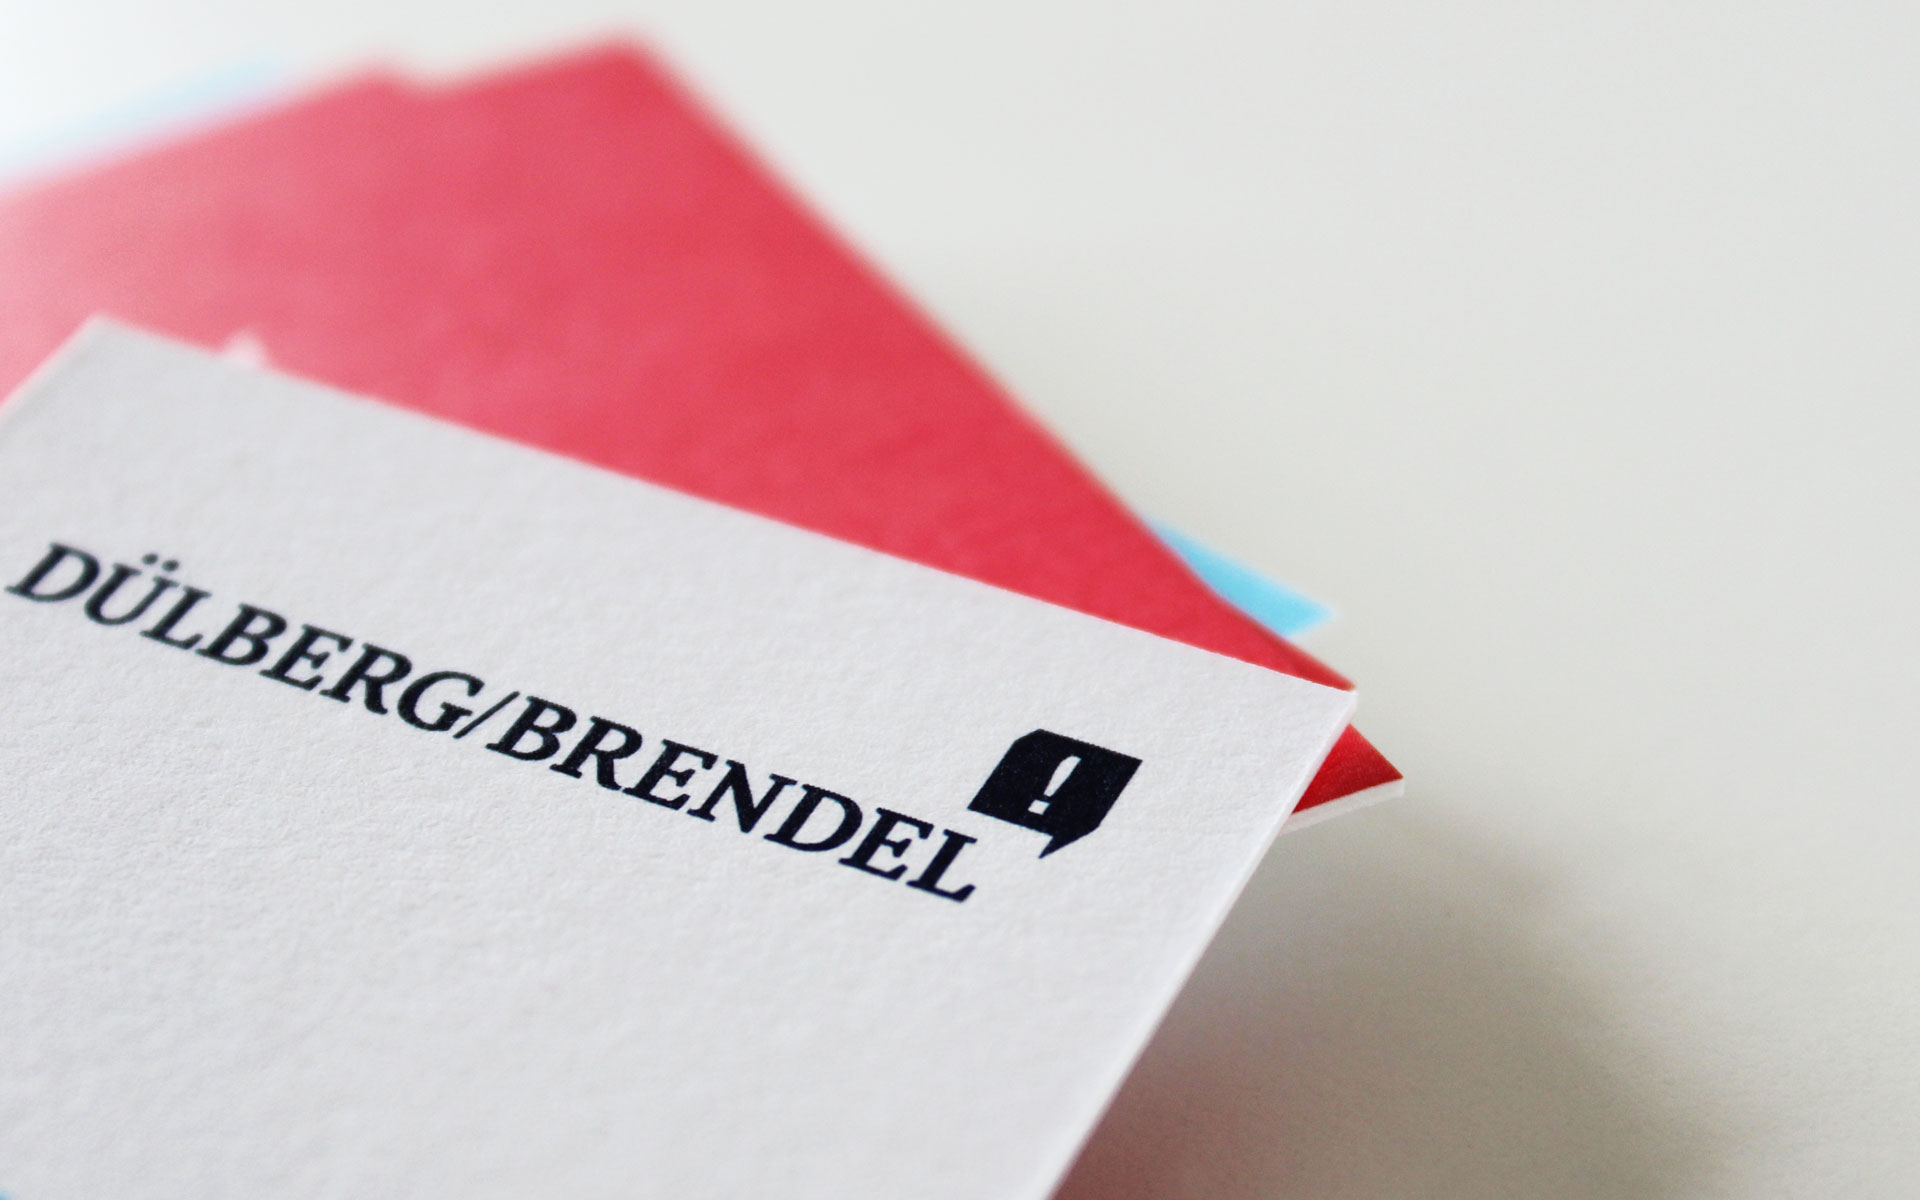 Dülberg & Brendel Corporate Design, Visitenkarte, Detail Logotype